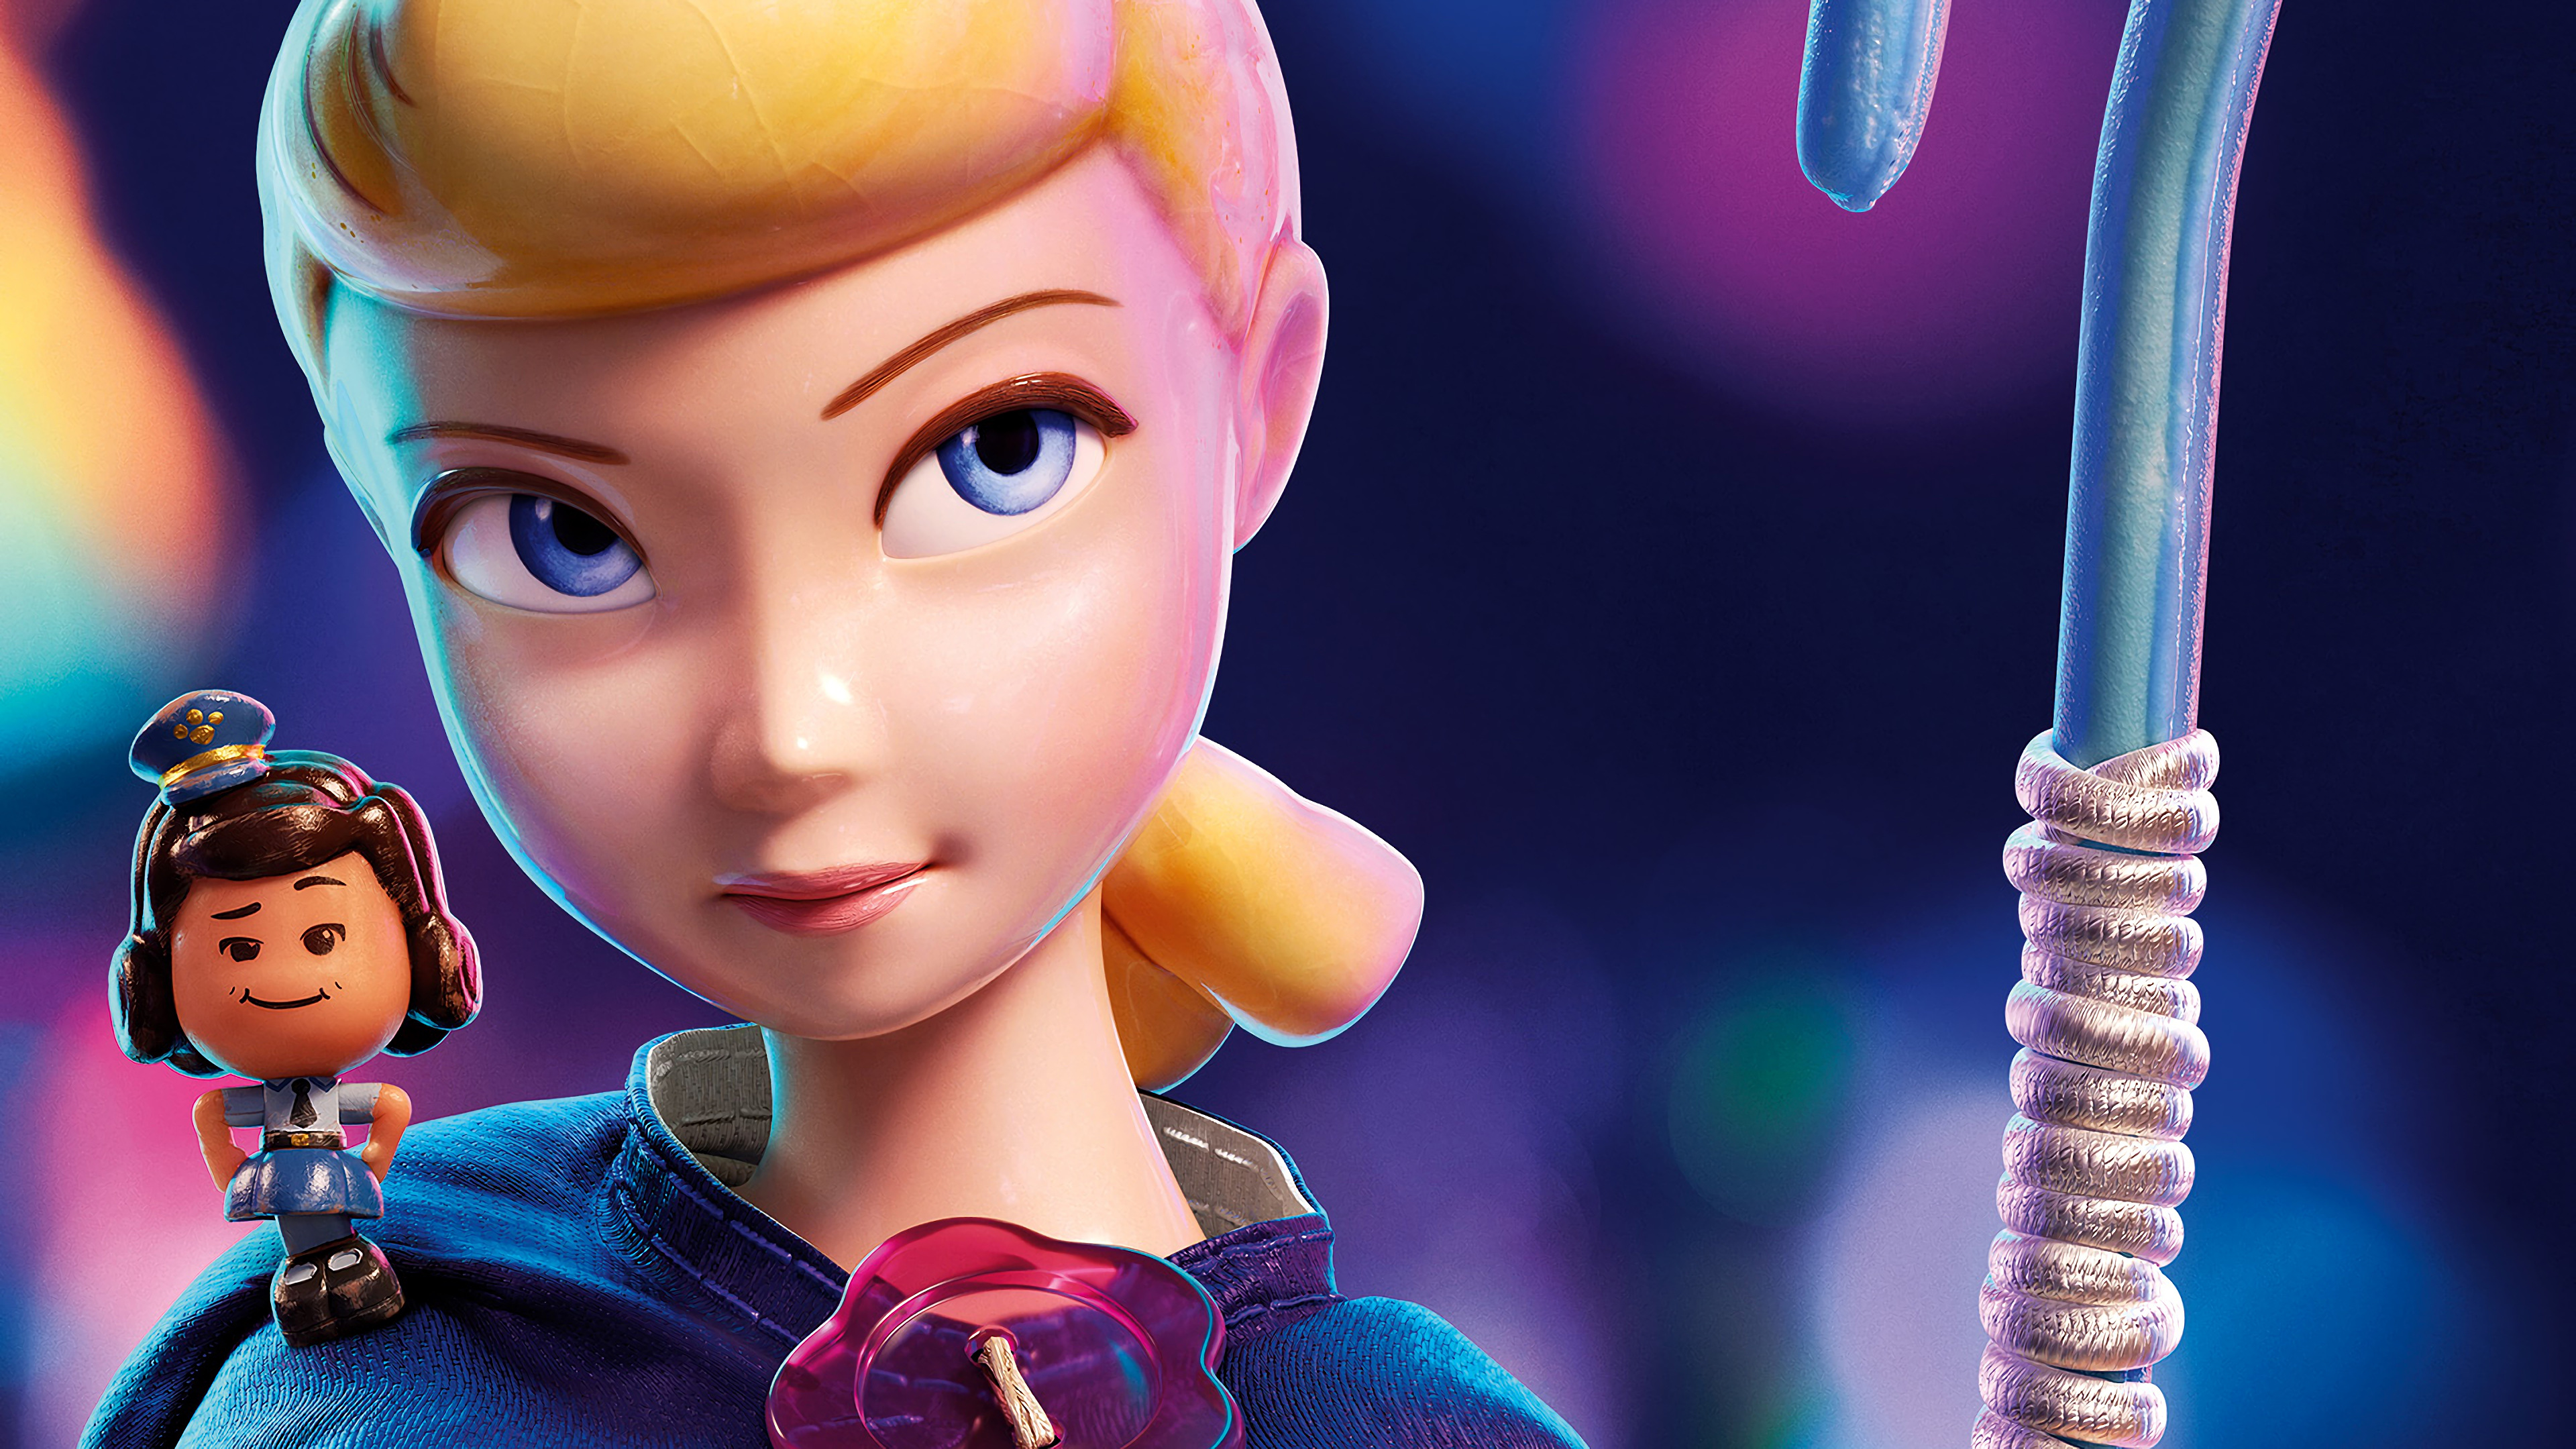 Toy Story 4 Bo Peep Officer Giggle 4k Wallpaper 5